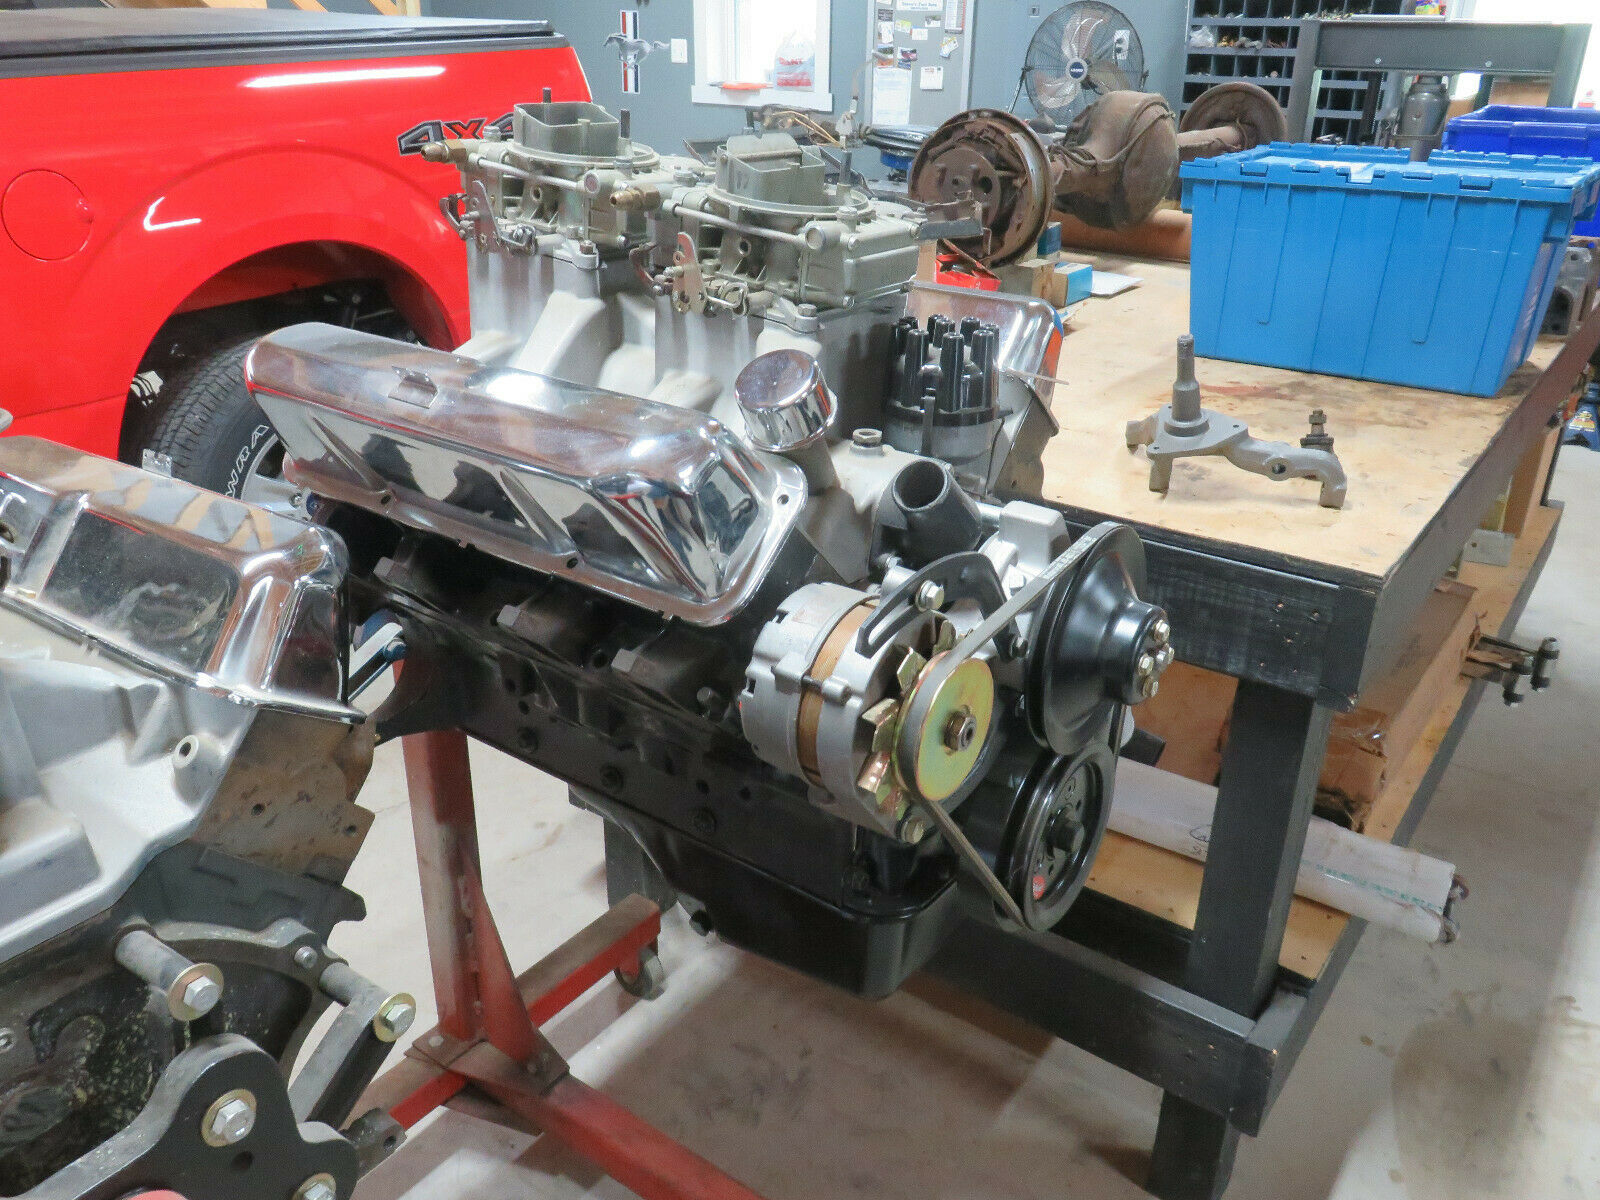 Furious Ford: We Found A High Riser 427ci FE Engine For Sale – The Blue Oval Brawler Engine From 1964